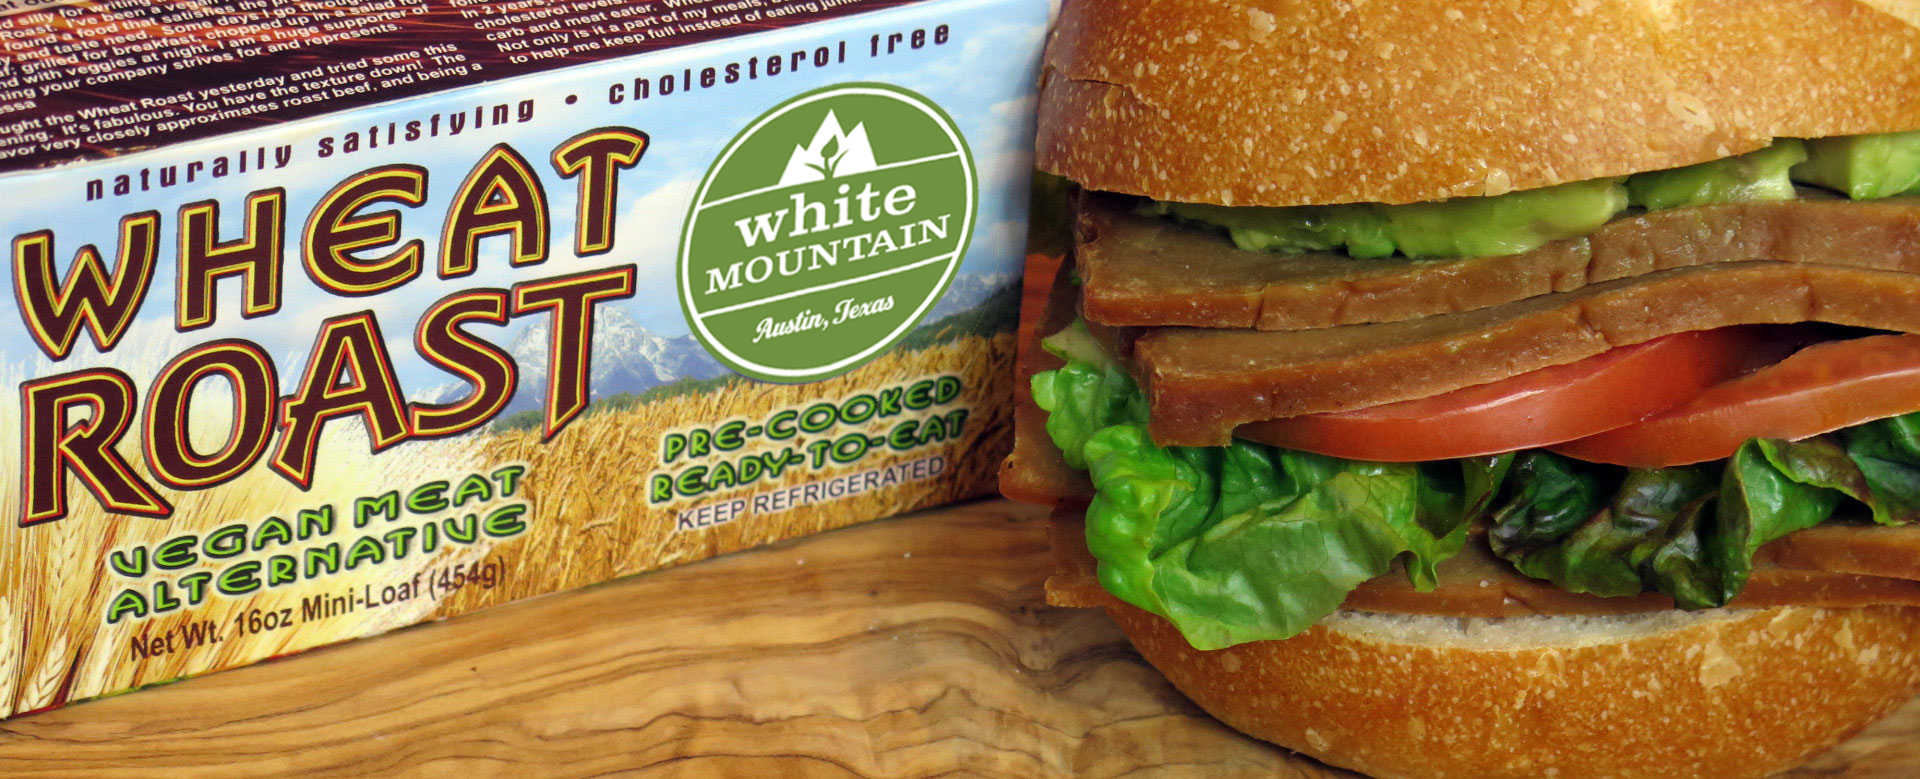 White Mountain Foods Wheat Roast